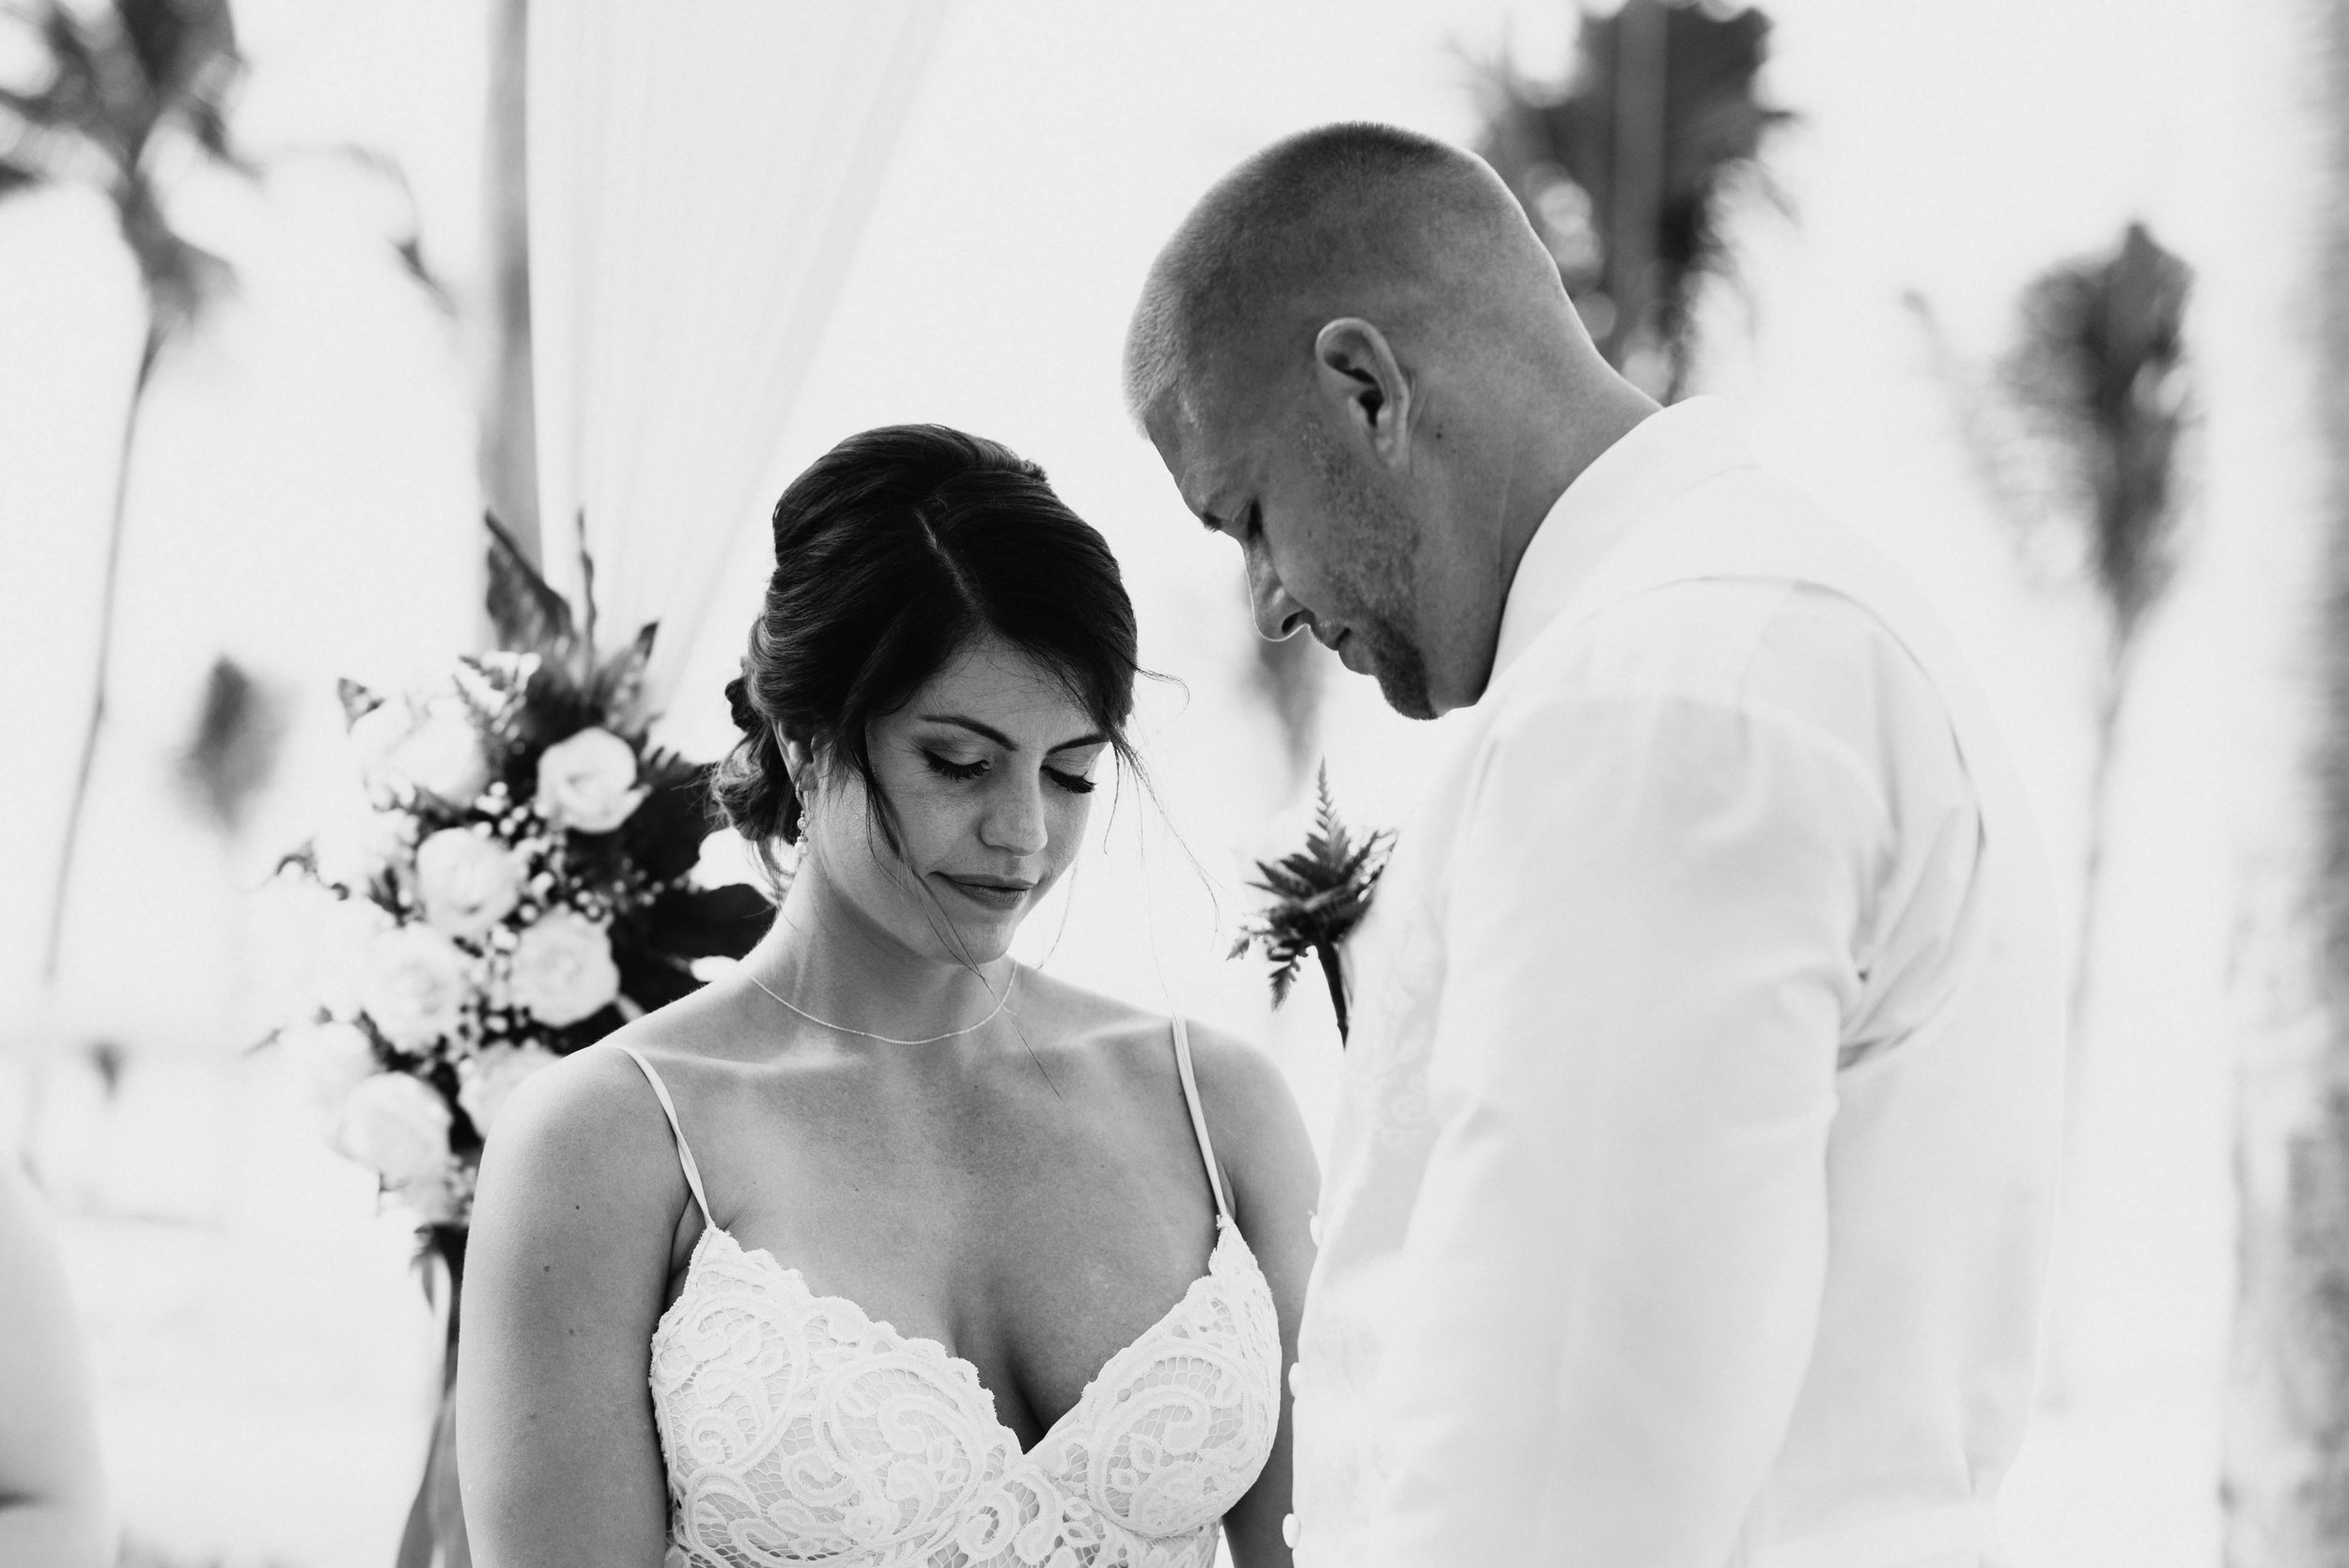 Beach-Wedding-Photography-Cancun-Elopement-Destination-Elopement-Photography-Destination-Beach-Wedding-+Costa-Rica-Wedding-Photography-Beach-Wedding-Photos-teresawoodhull-Cancun-Elopement-Beach-Wedding-+Sunset-Beach-Wedding-Fotografia-de-bodas-Nicoya-Peninsula-Elopement-Photographer-Santa-Teresa-Elopement-Photographer-Adventure-elopement-photographer-Santa-Teresa-Wedding-Photographer-Adventure-Wedding-Boda-playa-santa-teresa-Adventure-Wedding-Photography-Adventure-Wedding-Photographer-Beach-Elopement-Beach-Elopement-Photos-maddie-mae-Beach-Elopement-Photographer-Destination-Elopement-Photographer-Sunset-Beach-Elopement-Mexico-wedding-photographer-cabo-wedding-photographer-mexico-wedding-mexico-destination-wedding-cancun-destination-wedding-cancun-elopement-photographer-playa-del-carmen-wedding-playa-del-carmen-destination-wedding-photographer-playa-del-carmen-wedding-photography-Nicoya-Peninsula-Wedding-Photography-Nicoya-Peninsula-Wedding-Photographer-Nicoya-Peninsula-Elopement-Photography-black-white-bride-groom